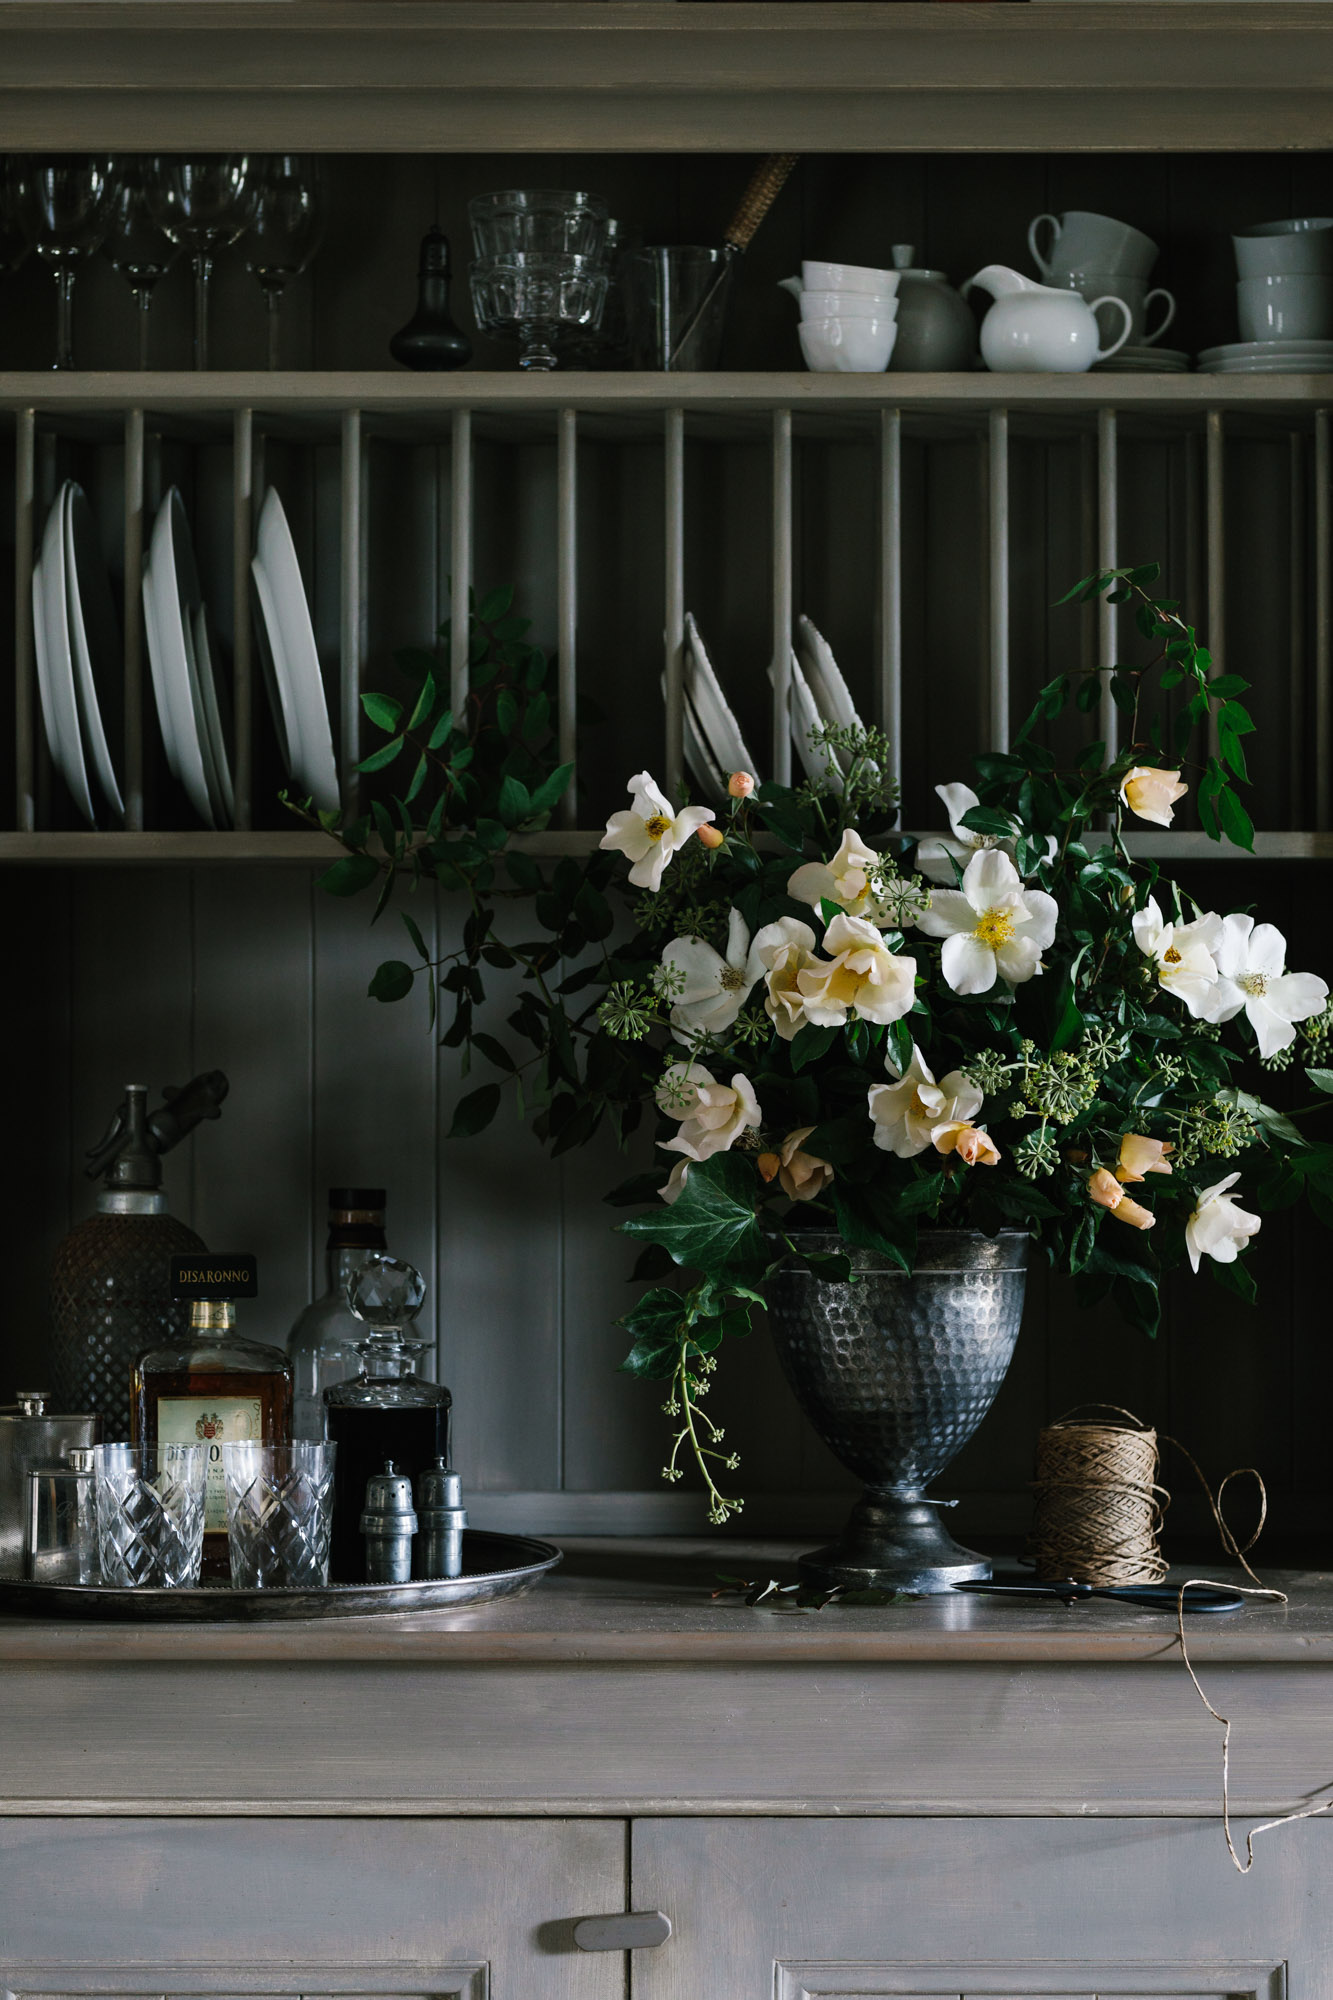 Marnie Hawson, Melbourne purpose-driven photographer for Acre of Roses, Trentham. A sustainable flower farm and luxury accommodation.